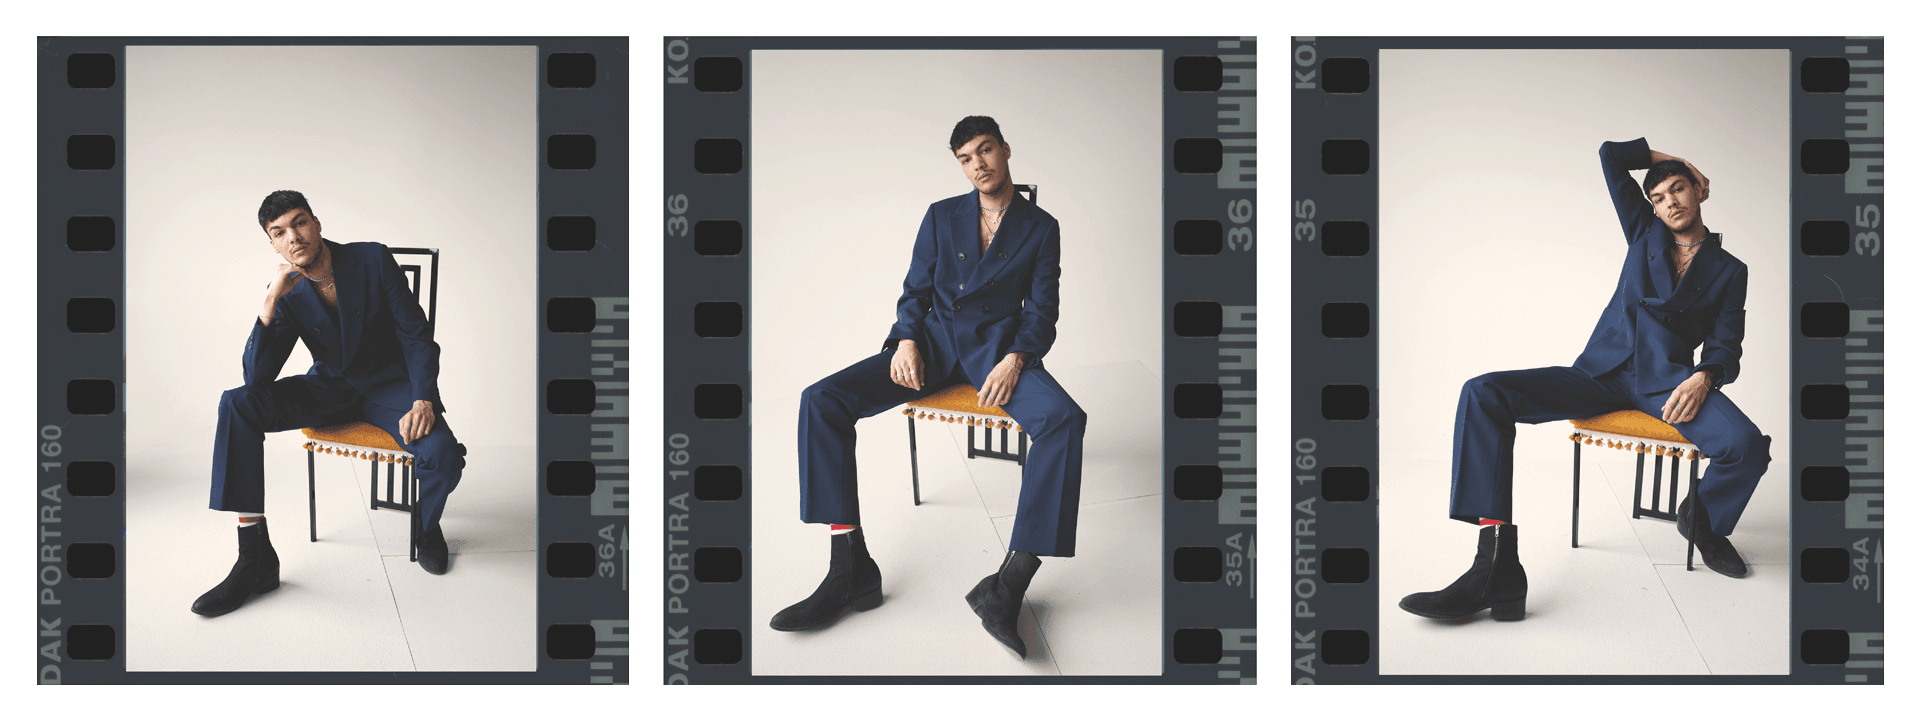 male model sitting on designer chair wearing dark blue suit jacket and pants with black heeled shoes in three polaroid series for Collector's Cut by Hyperbureau with styling and artistic direction by Studio TB